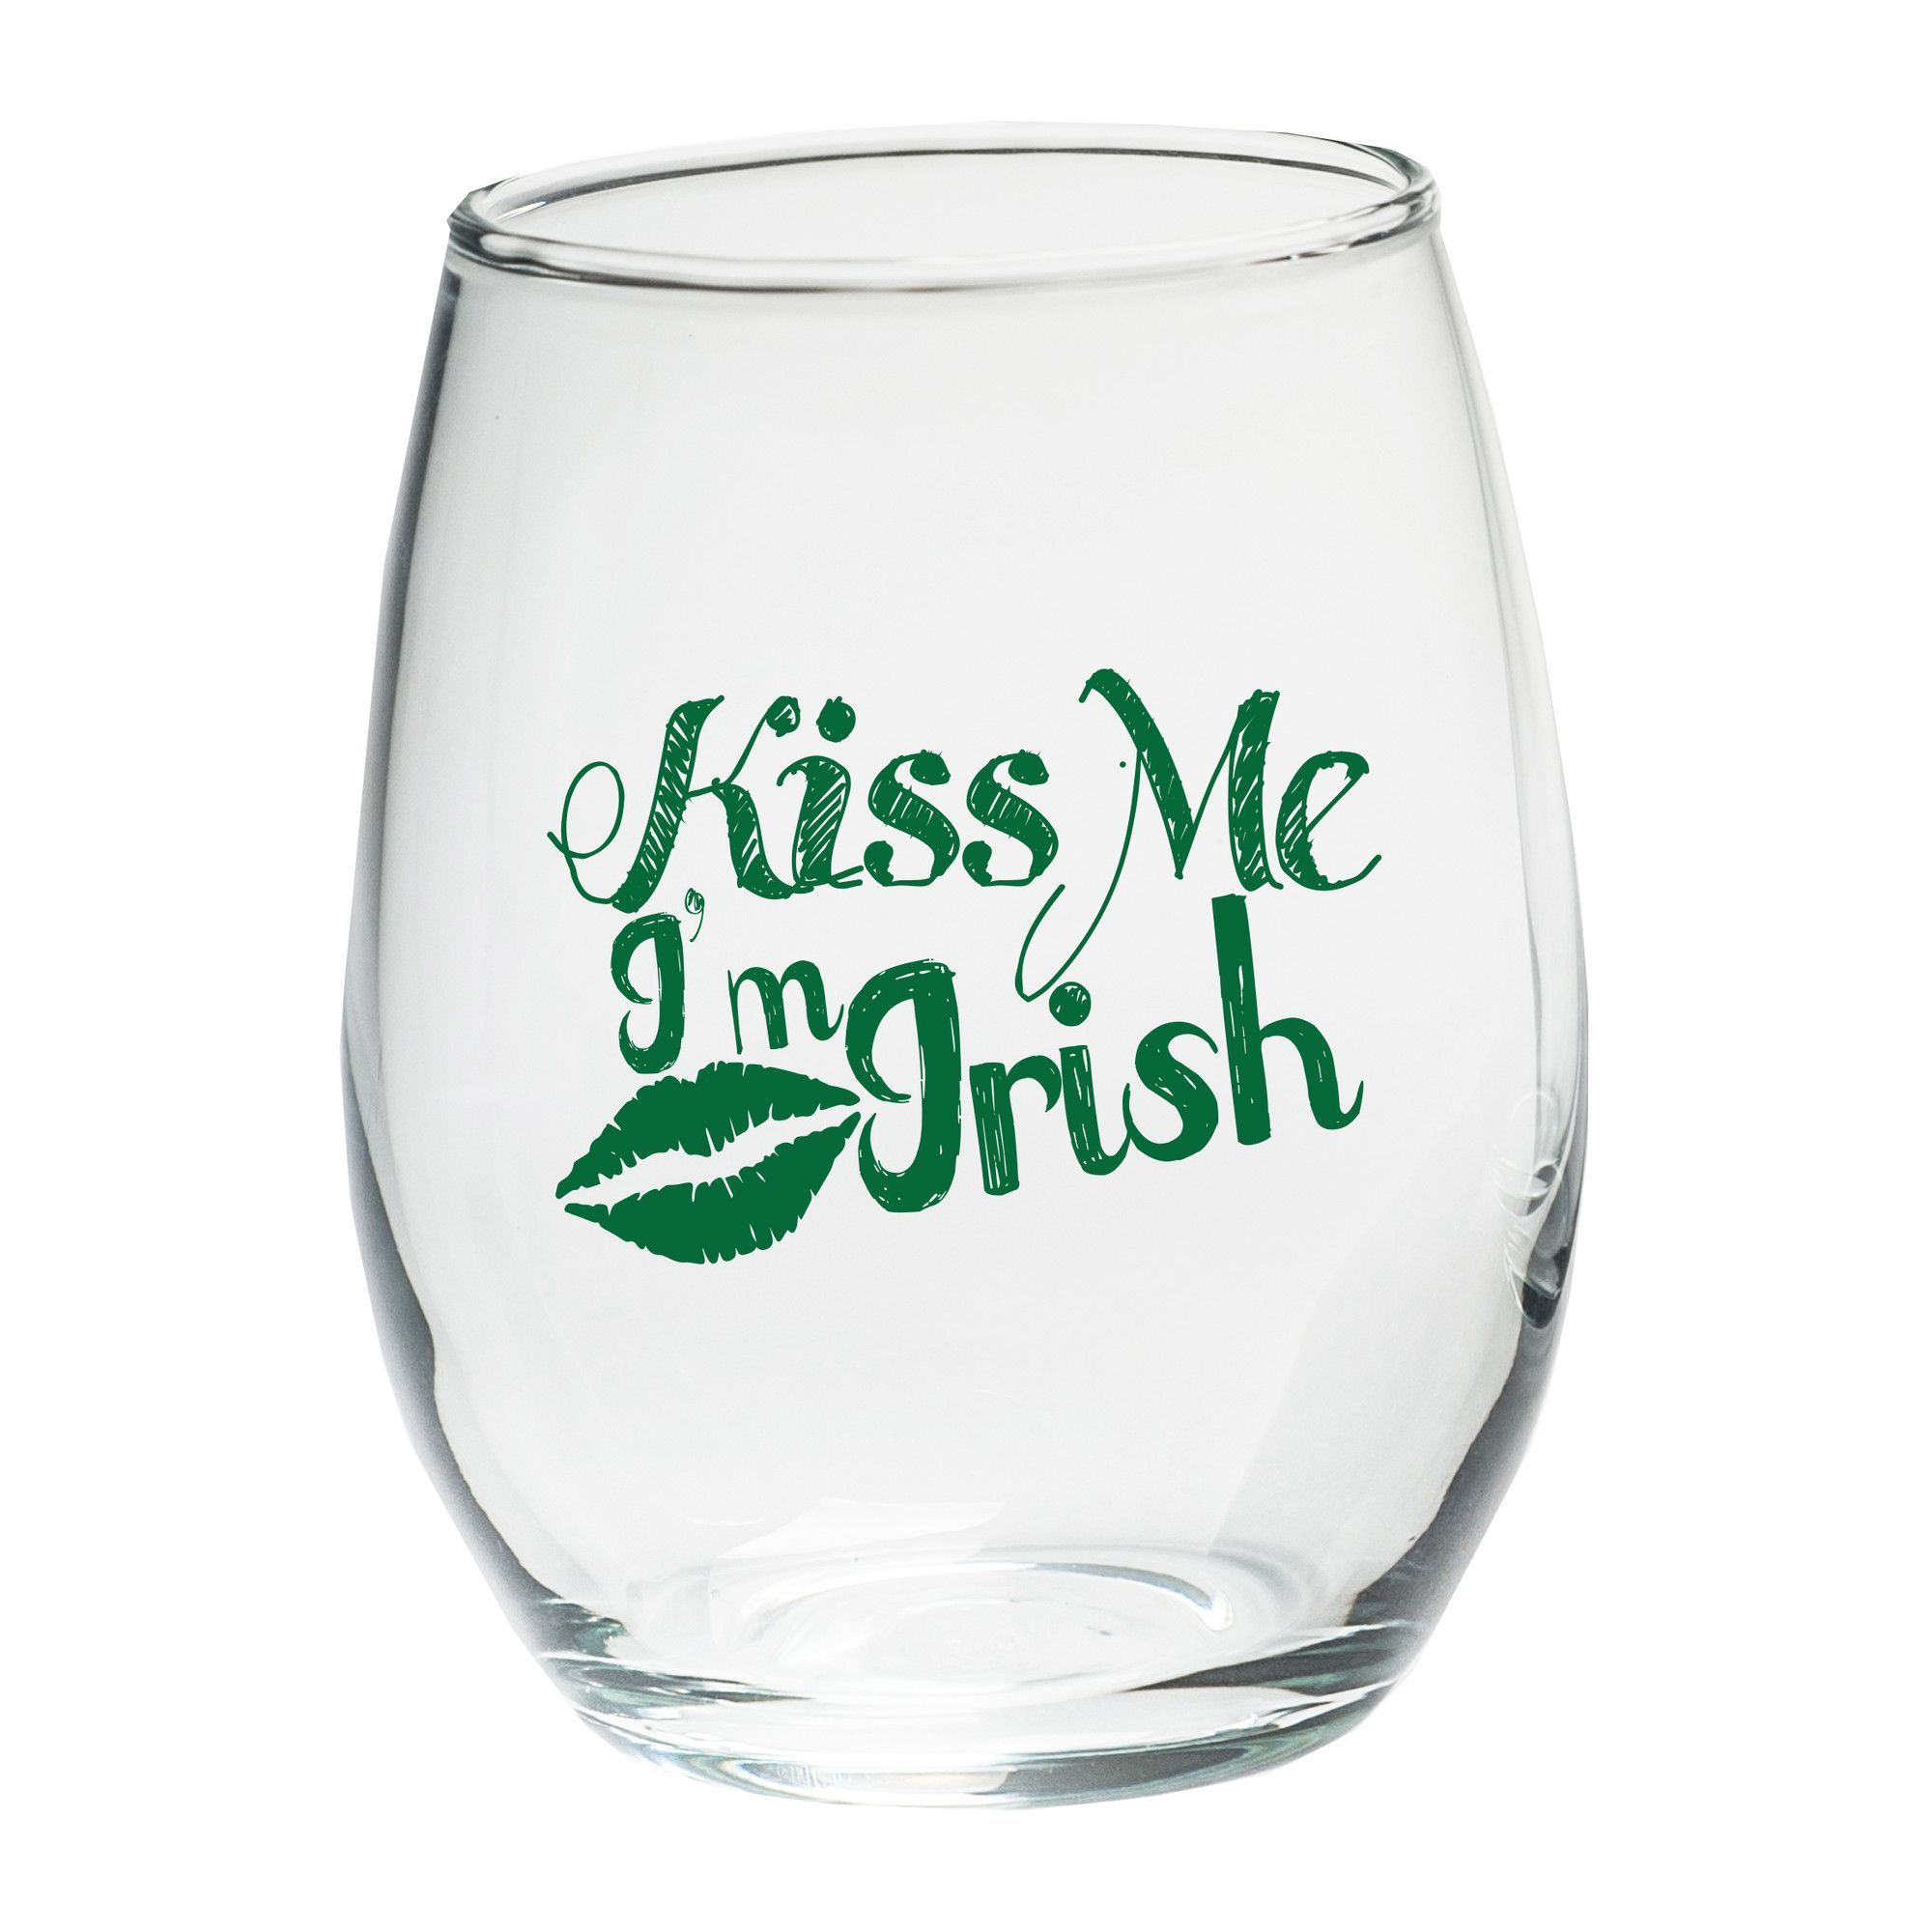 Features:  -Capacity: 15 oz.  Product Type: -Wine tumbler/Stemless wine glass.  Style: -Novelty.  Color: -Clear and green.  Primary Material: -Glass.  Glass/Crystal Component: -Yes.  Number of Glasses